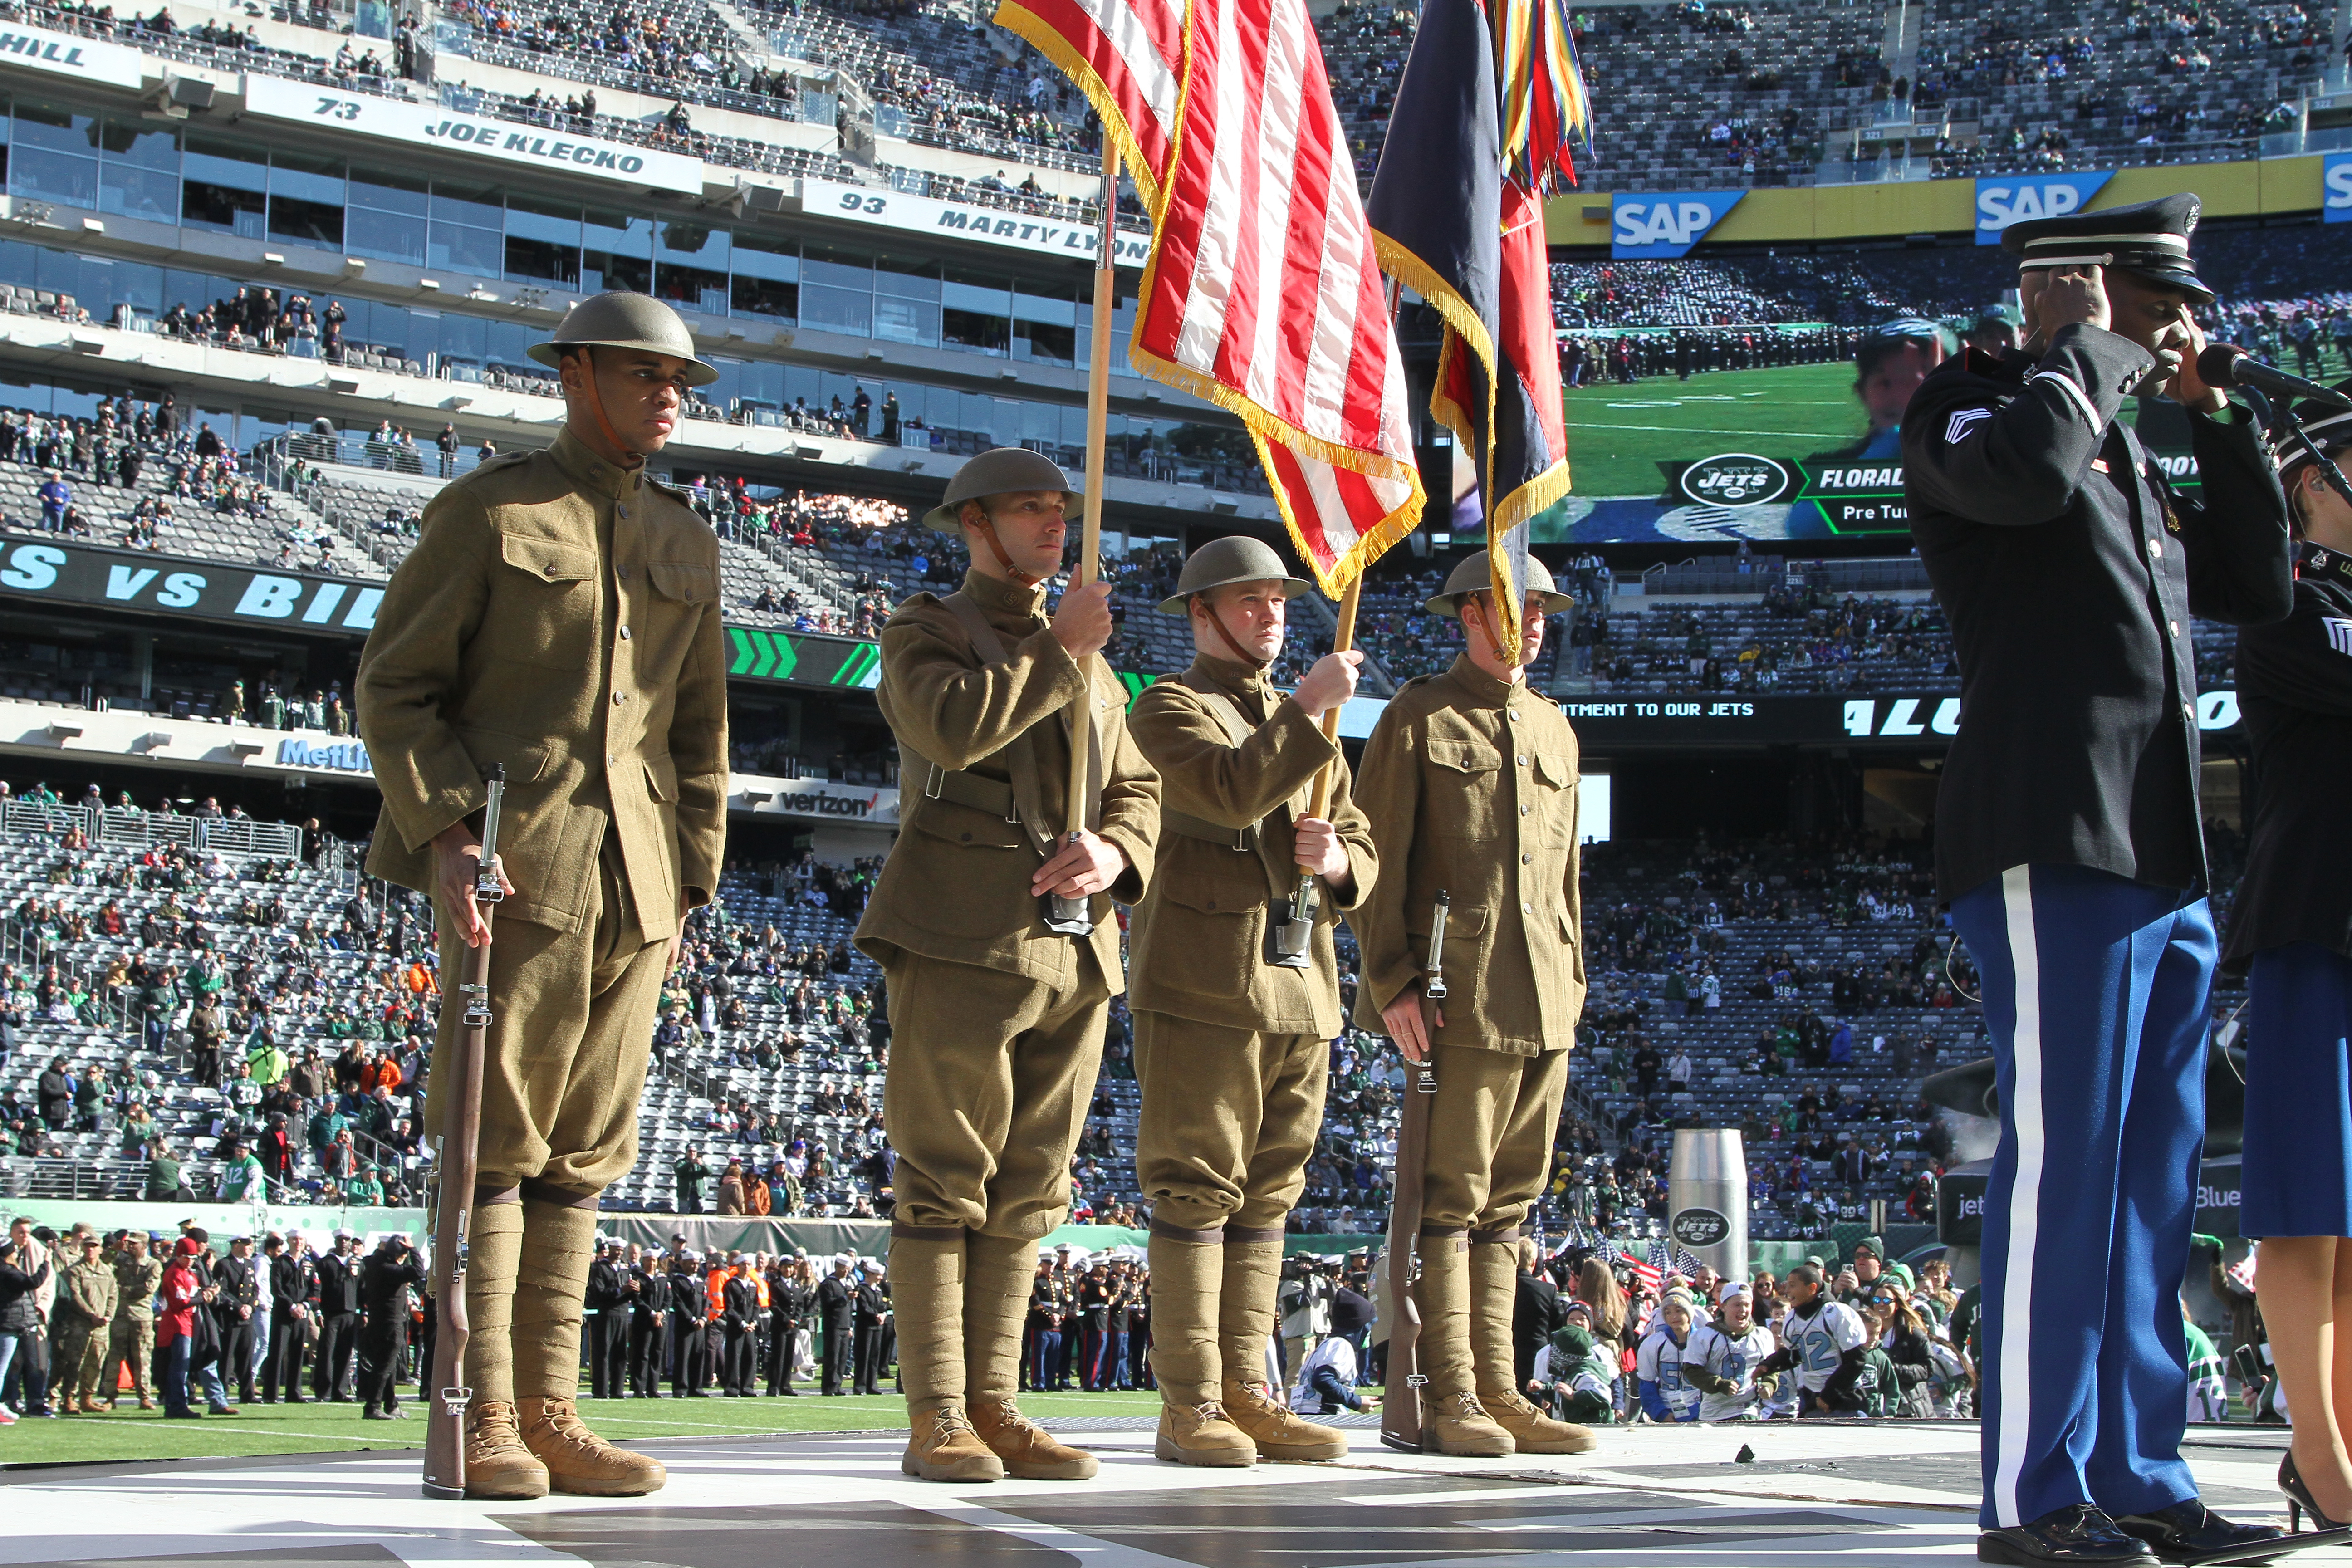 42nd Div. Color Guard Marks Veterans Day